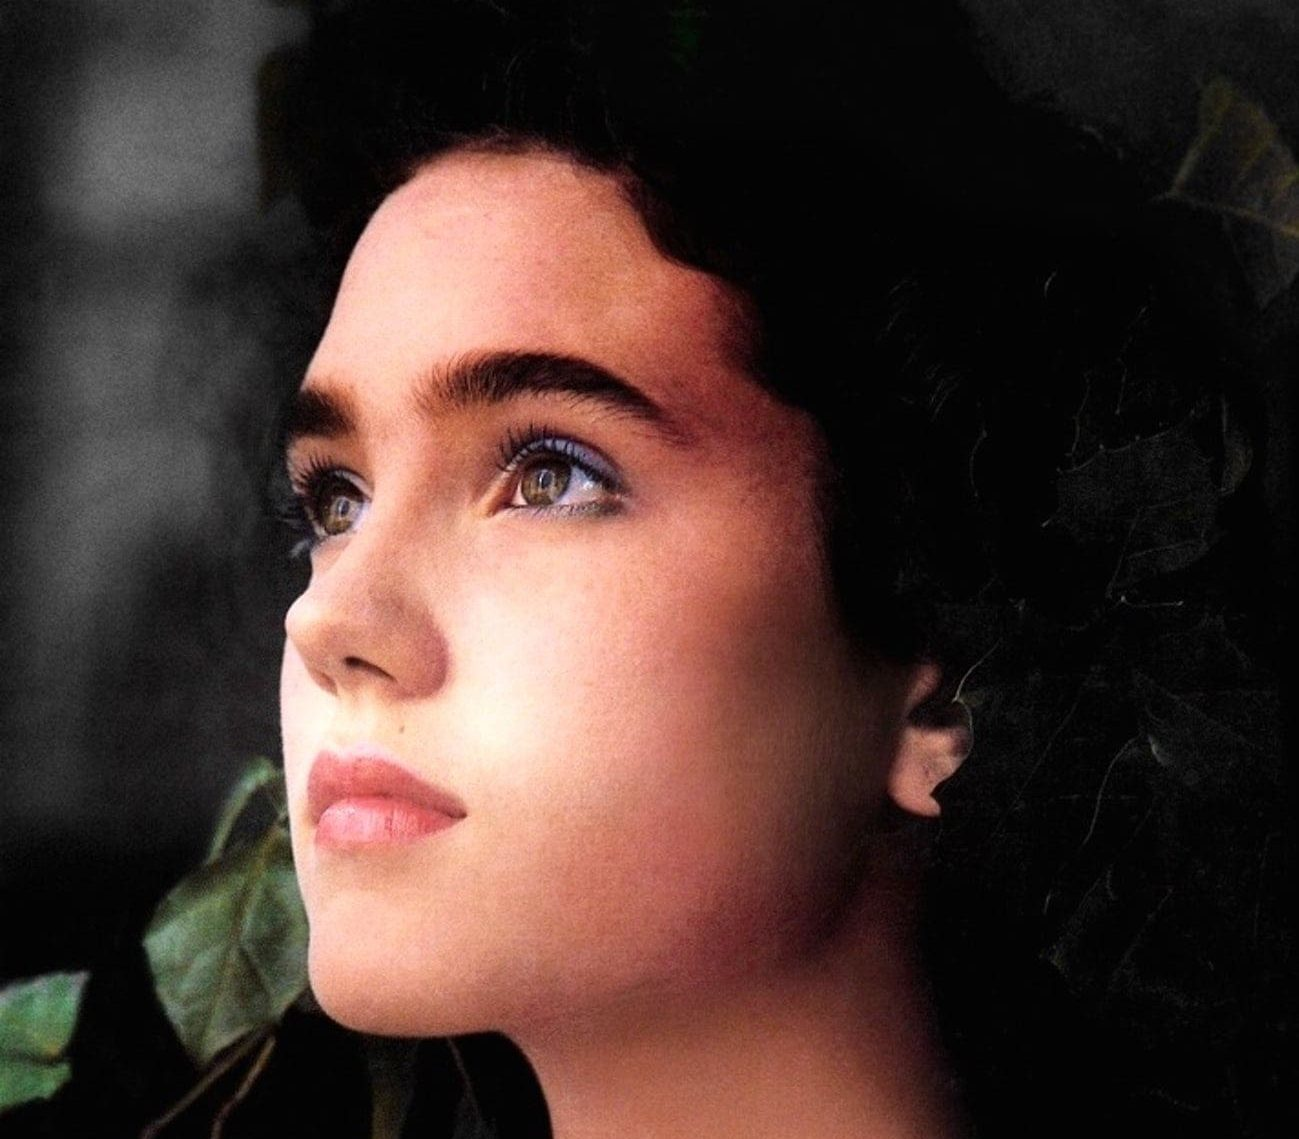 1 9 e1609948712189 20 Things You Probably Didn't Know About Jennifer Connelly